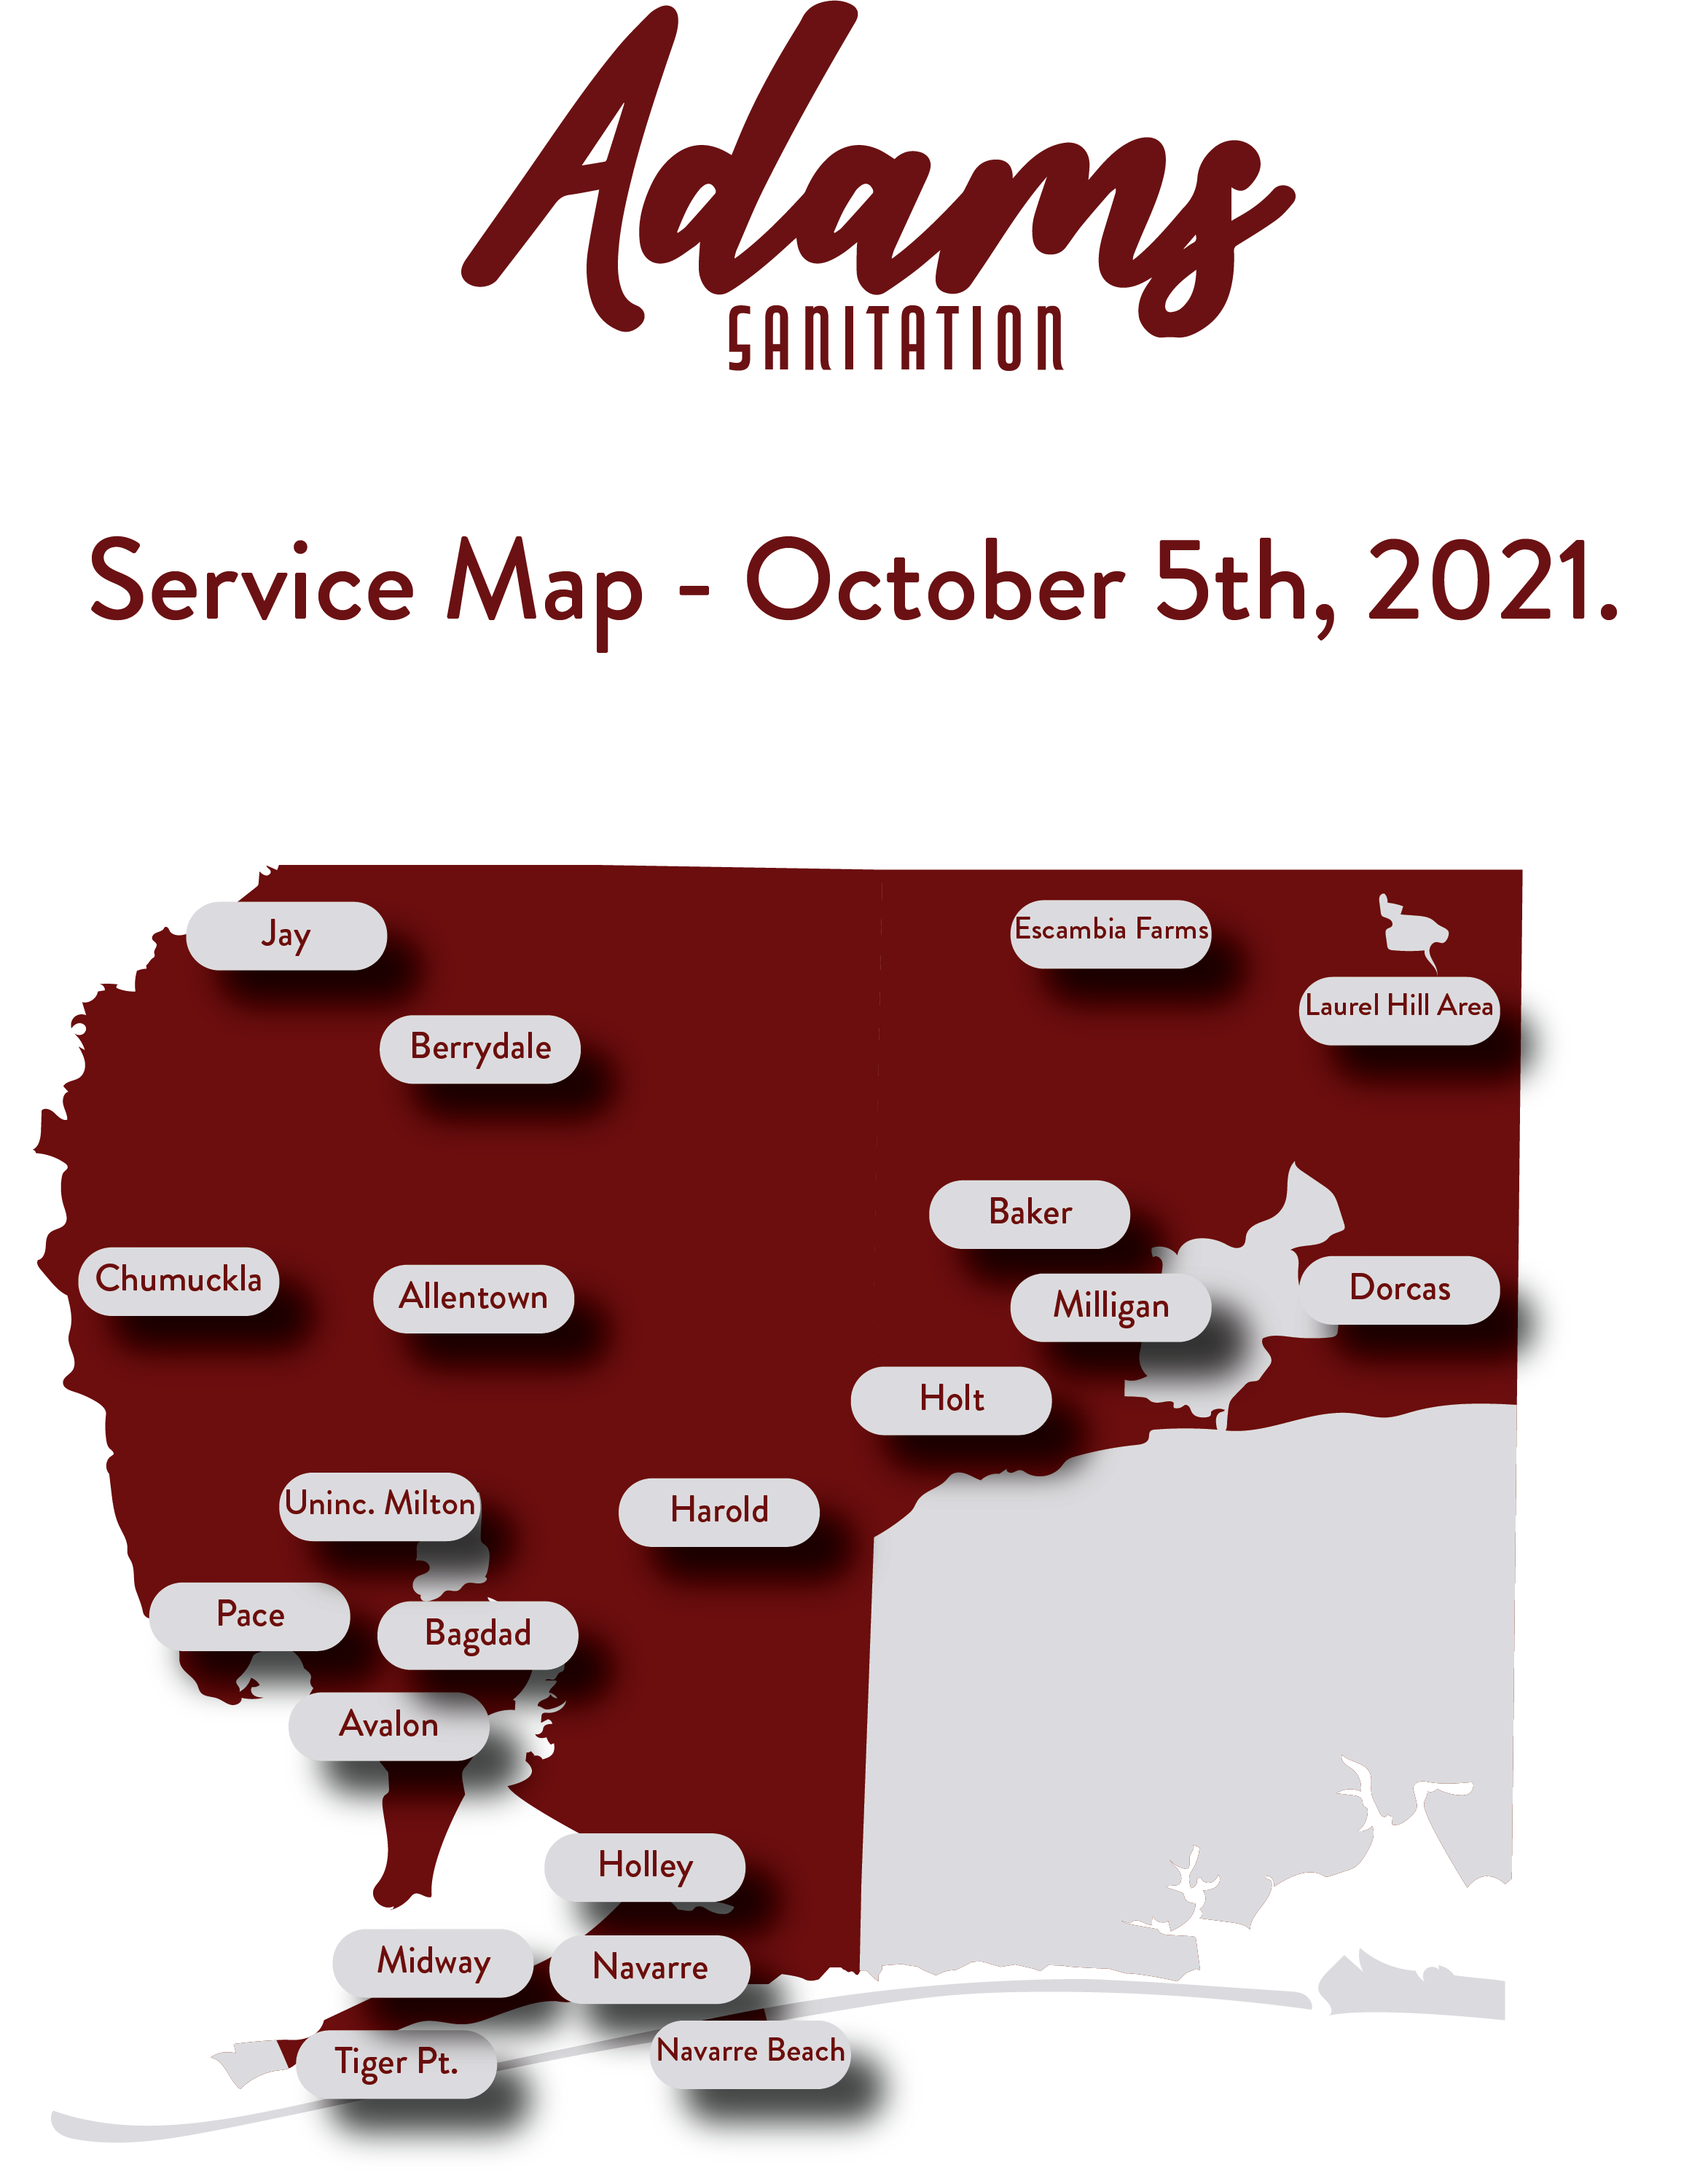 Adams Sanitaiton Service Area Map - Updated October 4th, 2021